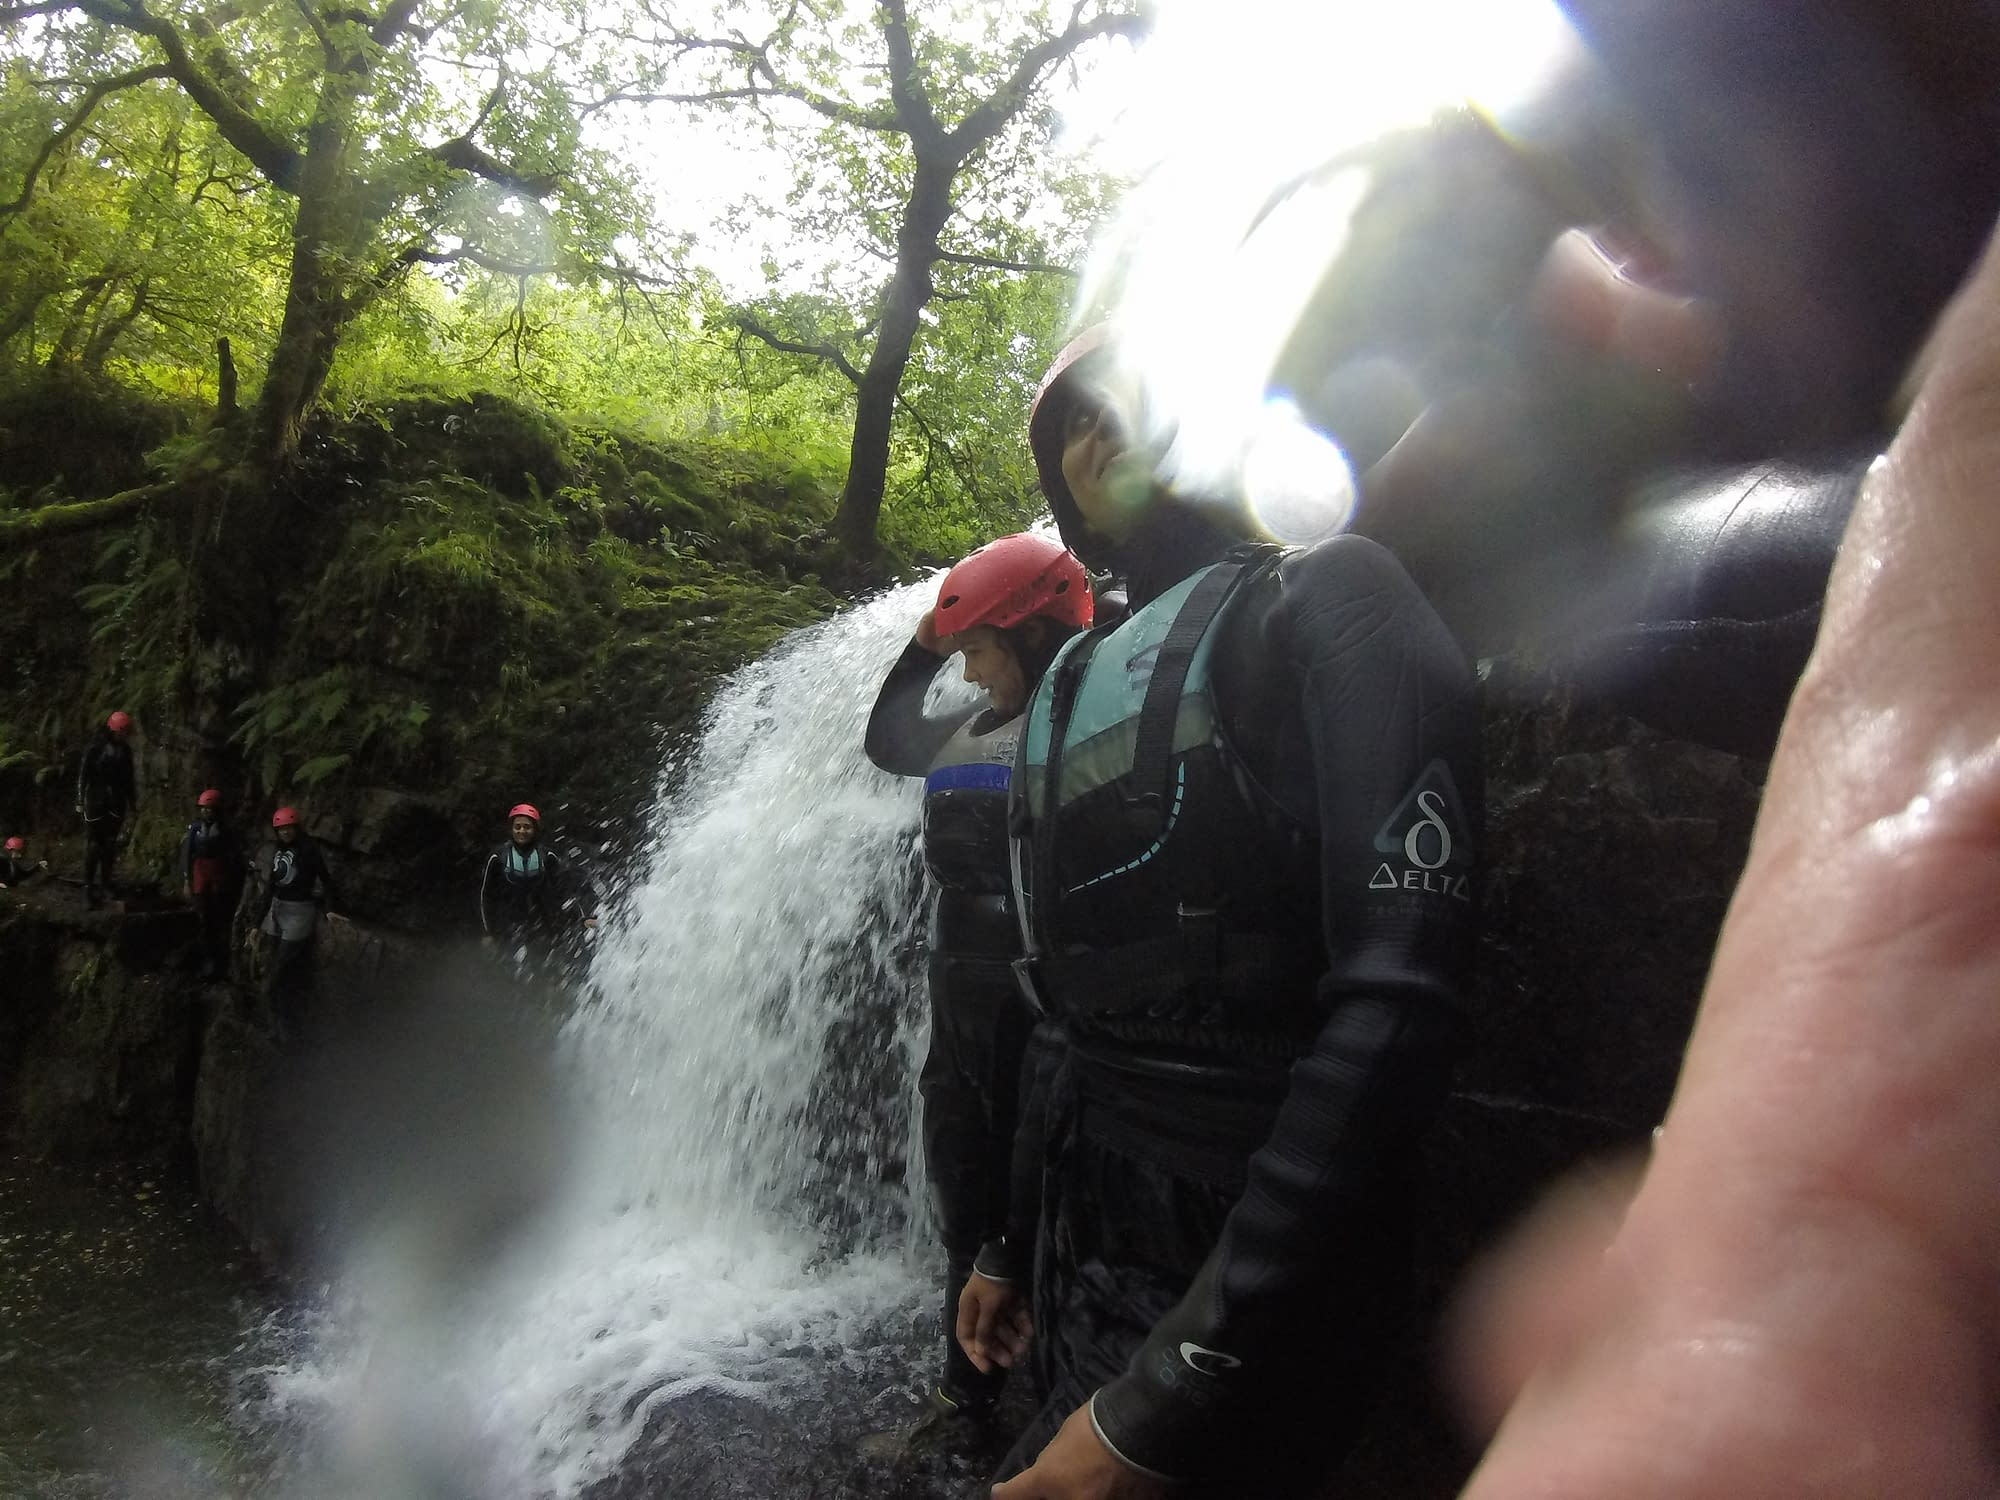 Group getting ready to jump into a plunge pool during gorge walking activity